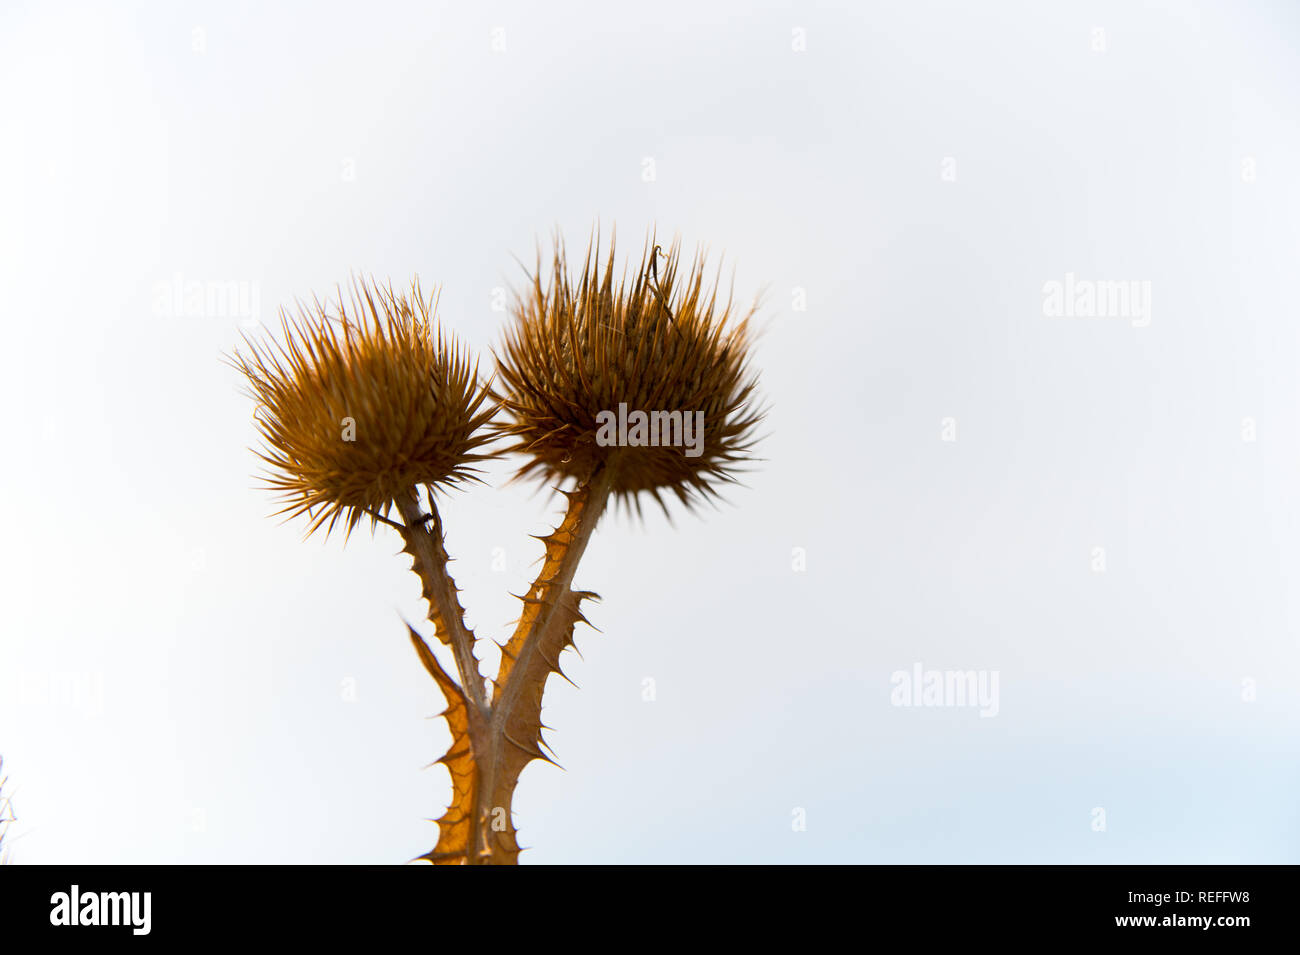 Dry flowers of spine plant on white sky background. Wild thorn plant outdoor. Flora and nature. Defense and protection concept, copy space. - Stock Image